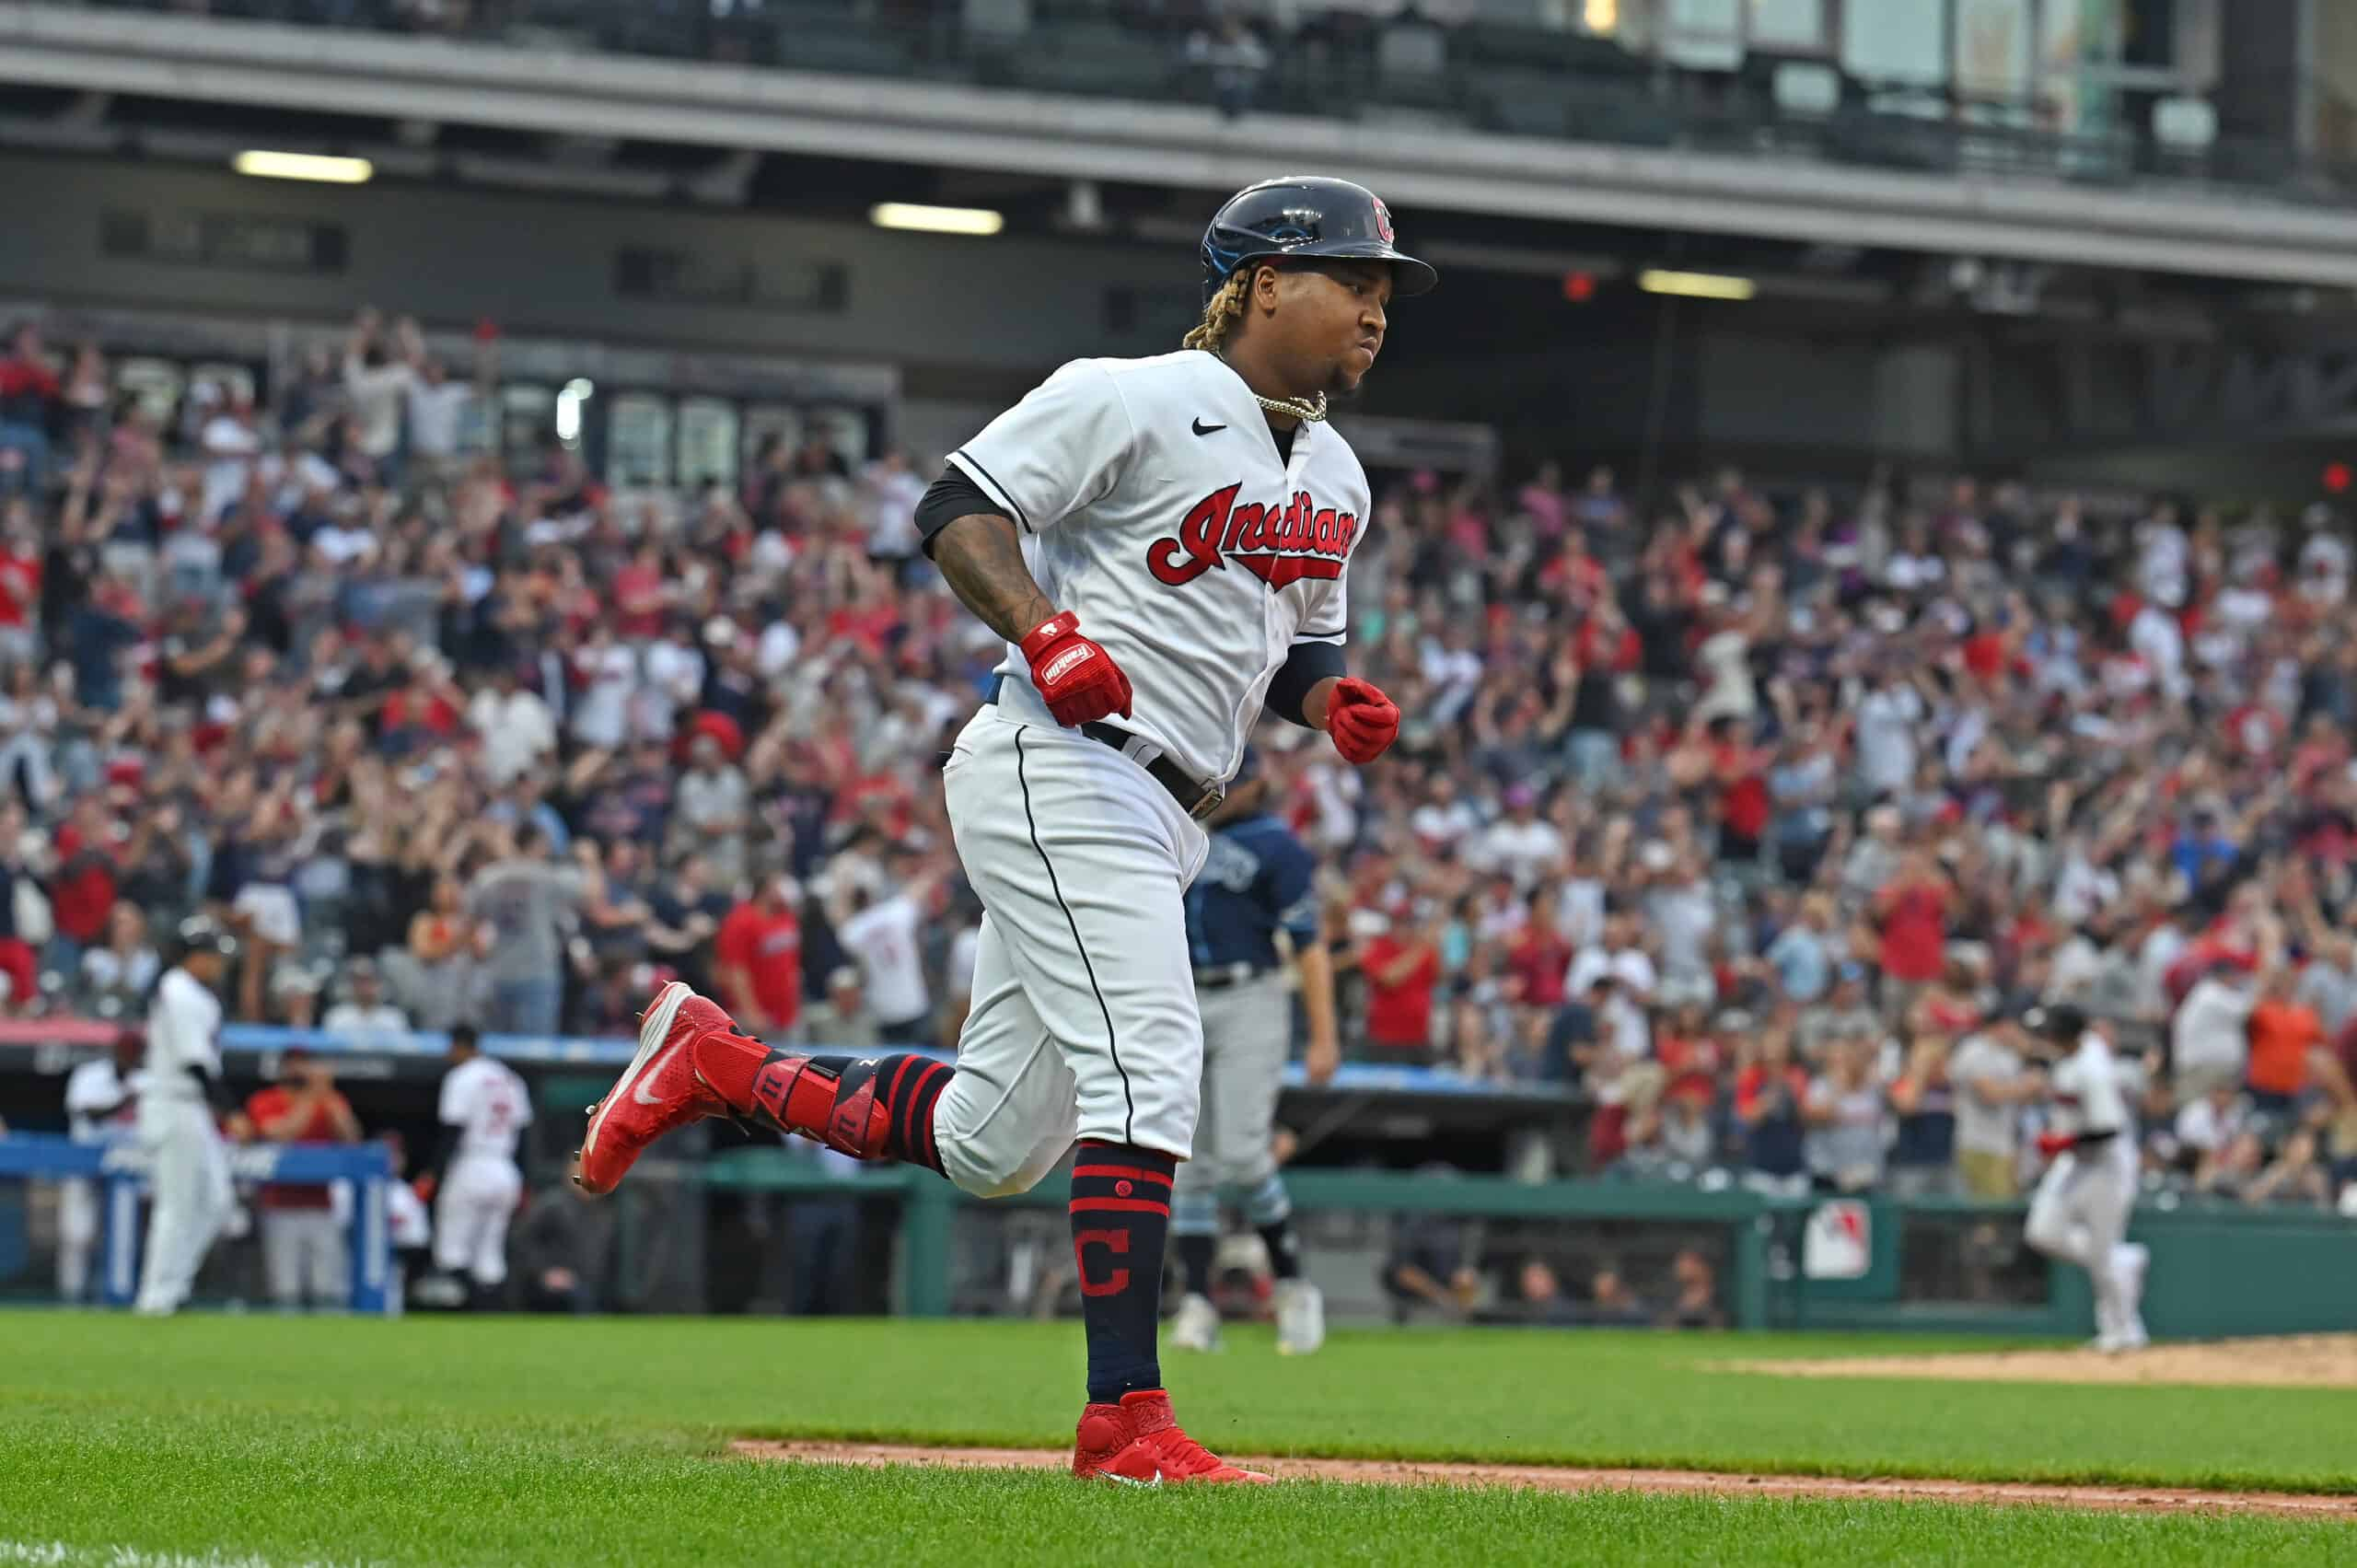 Jose Ramirez #11 of the Cleveland Indians runs out a three run homer during the third inning against the Tampa Bay Rays at Progressive Field on July 23, 2021 in Cleveland, Ohio.